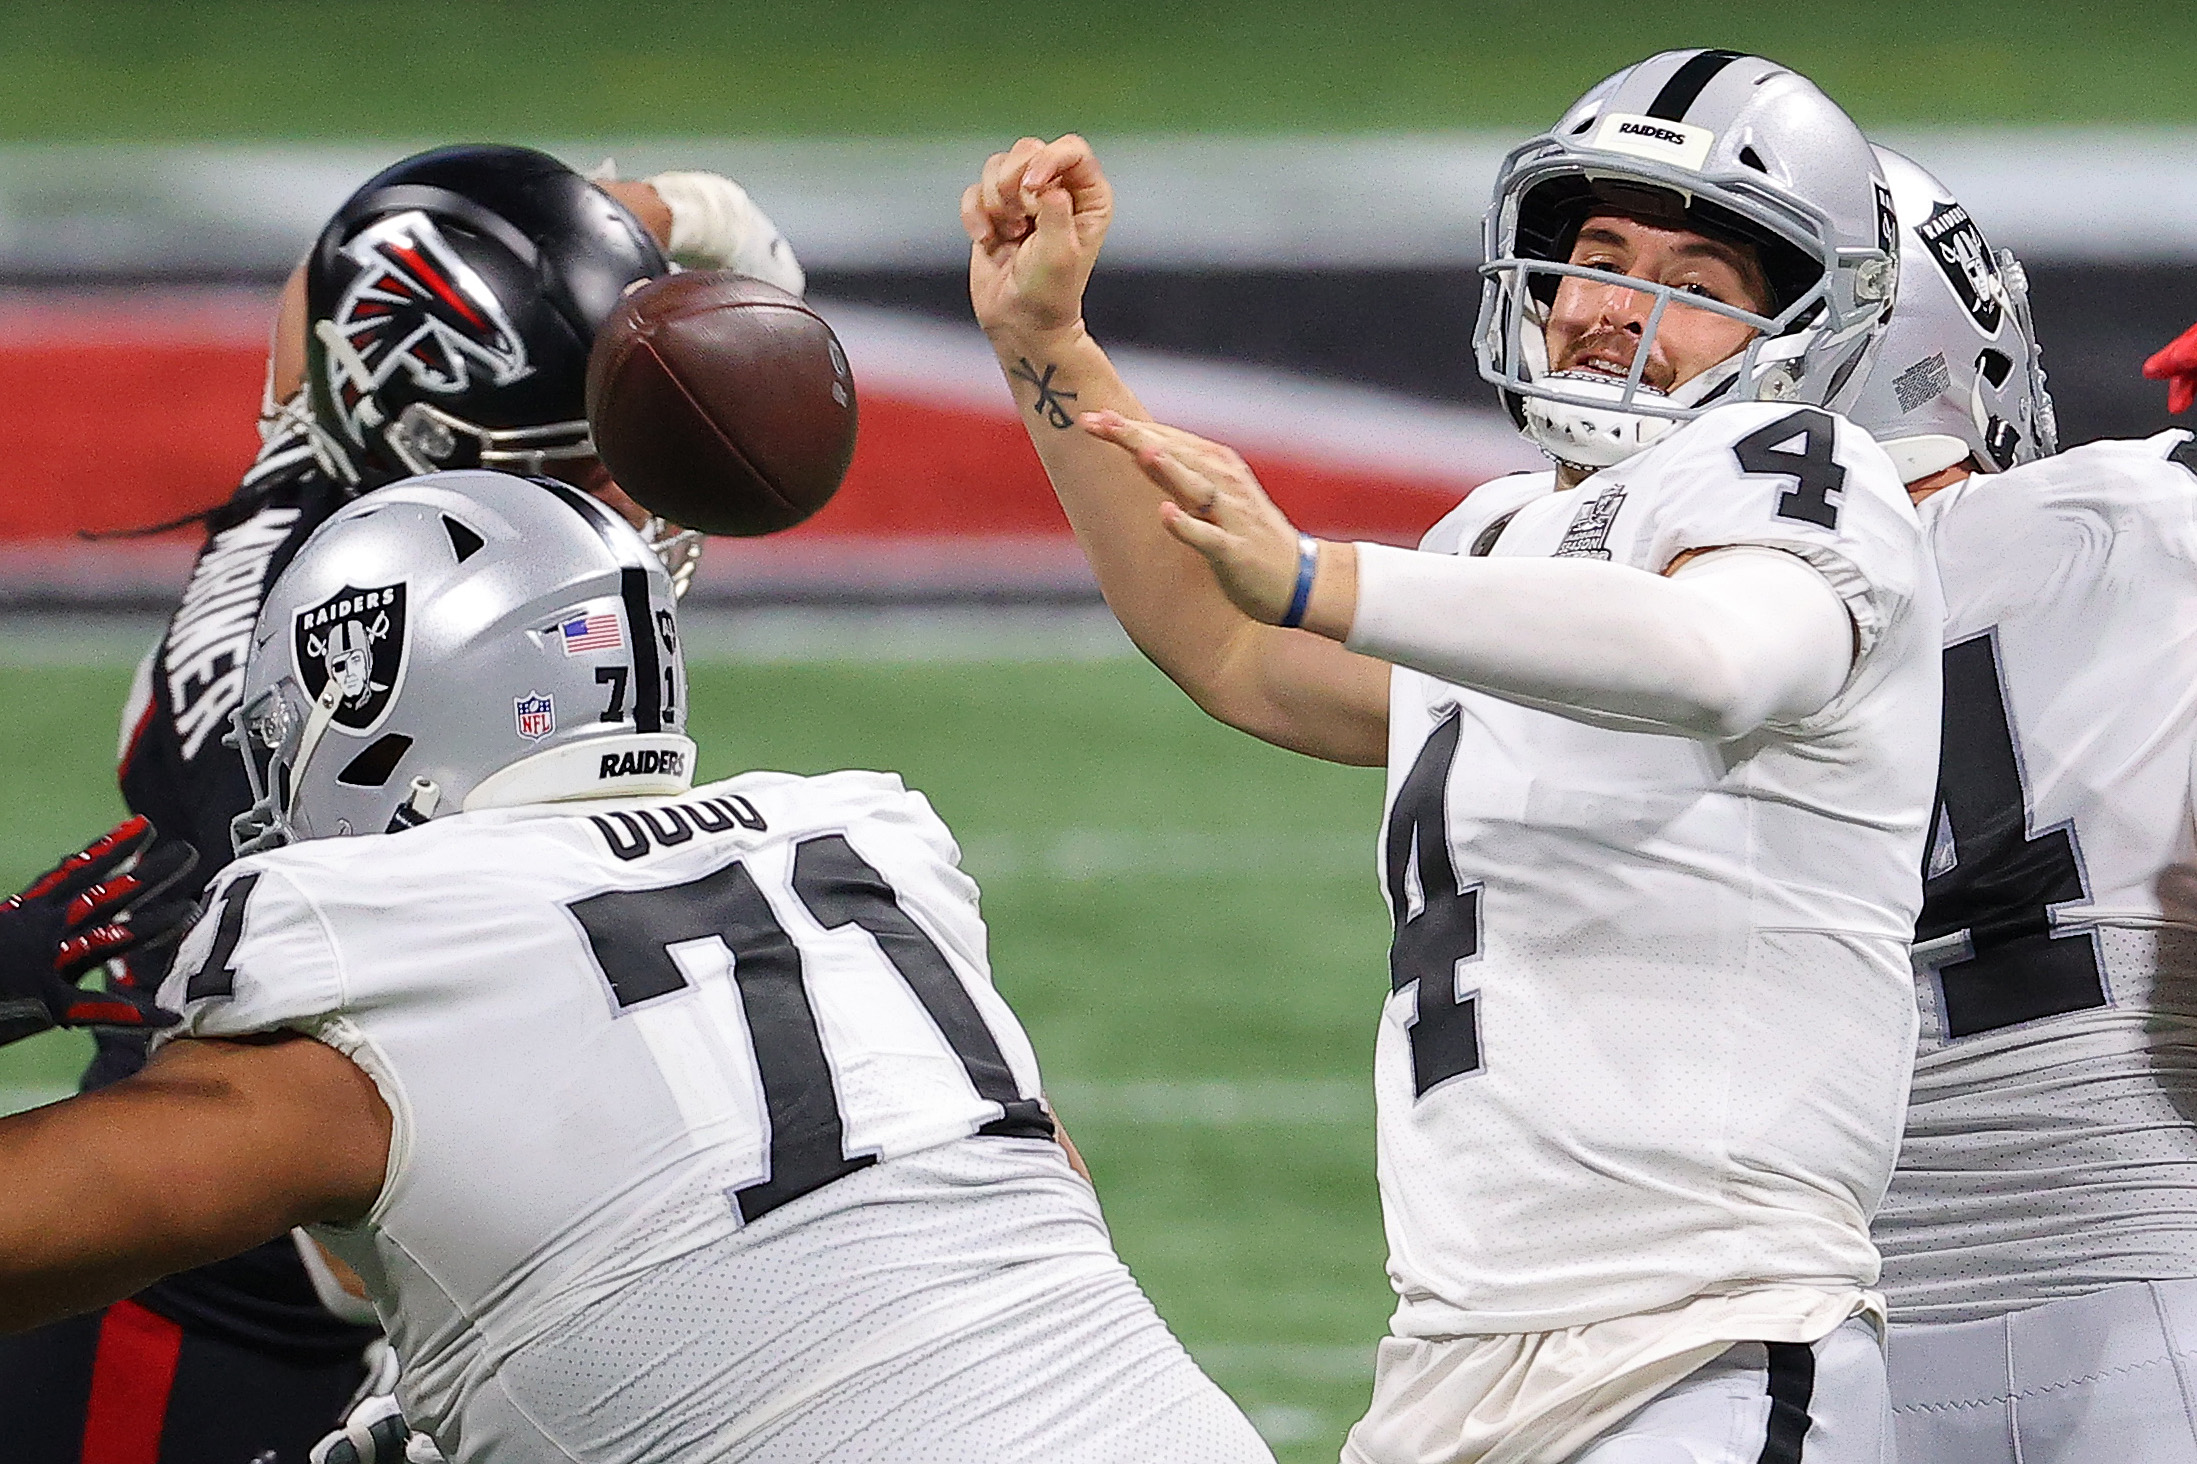 Derek Carr #4 of the Las Vegas Raiders is stripped of the ball during their NFL game against the Atlanta Falcons at Mercedes-Benz Stadium on November 29, 2020 in Atlanta, Georgia.